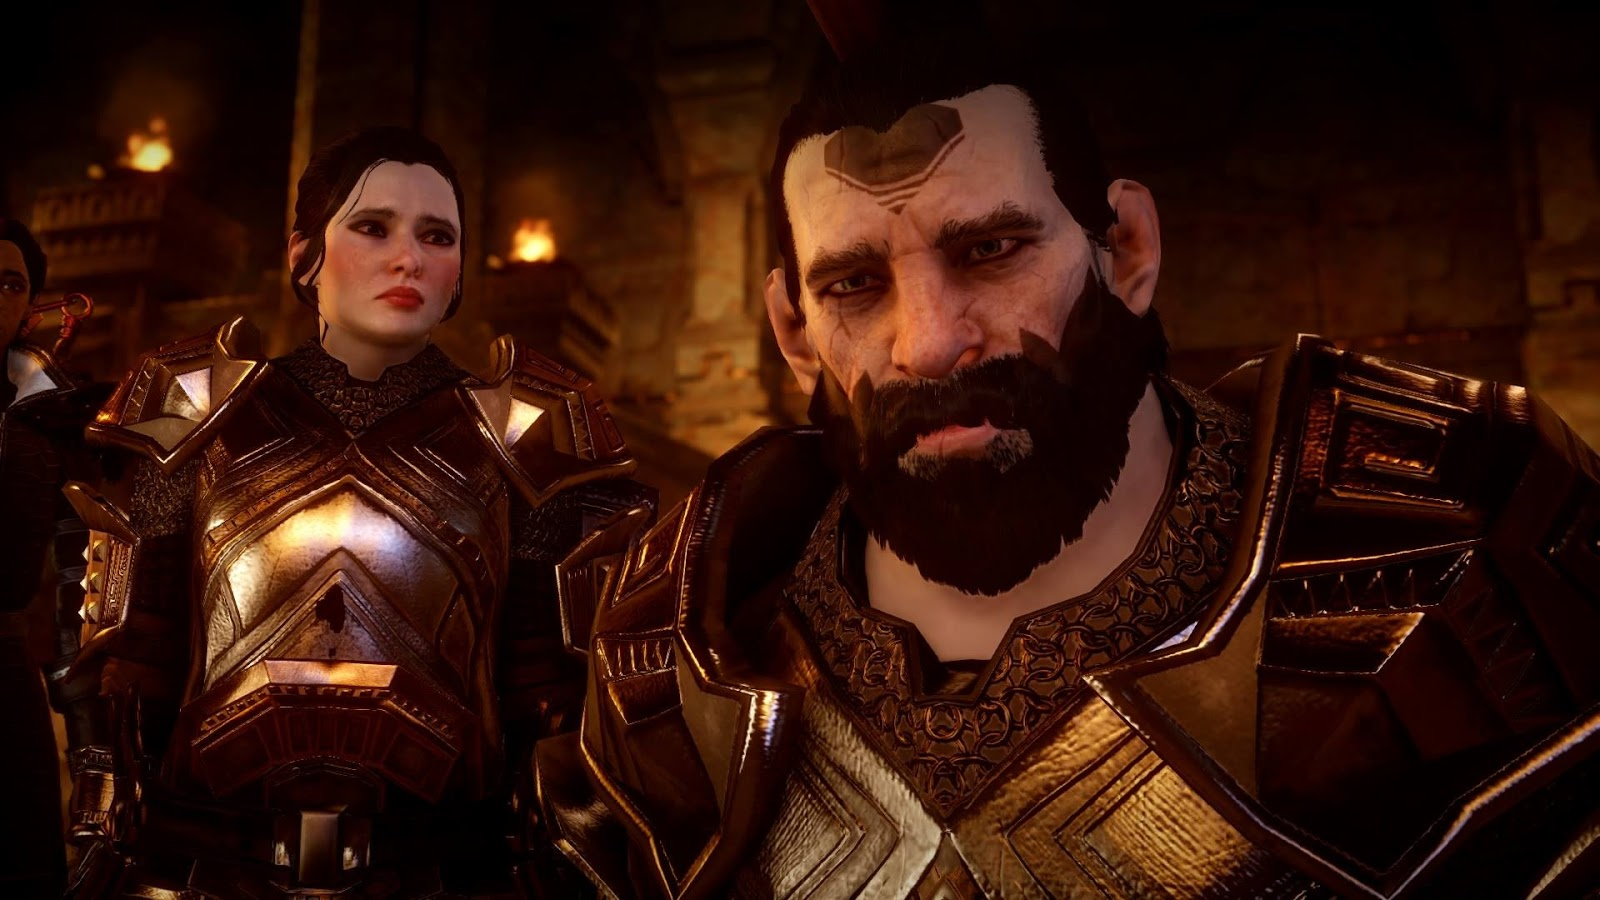 Dragon Age Inquisition: The Descent – A Second Opinion | Nerdy But